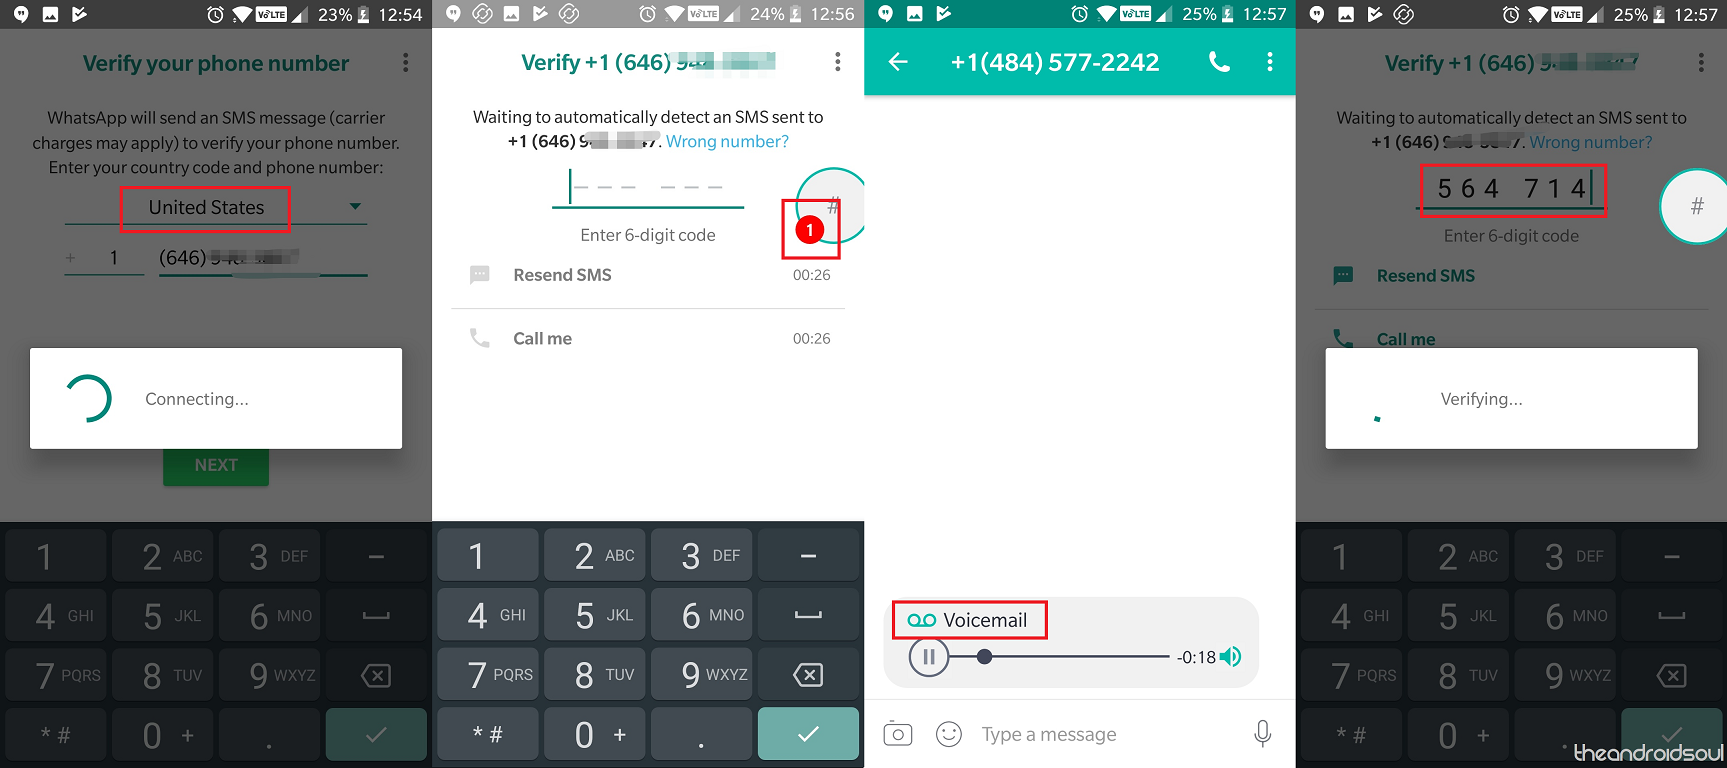 How to create a second WhatsApp account without actual mobile number